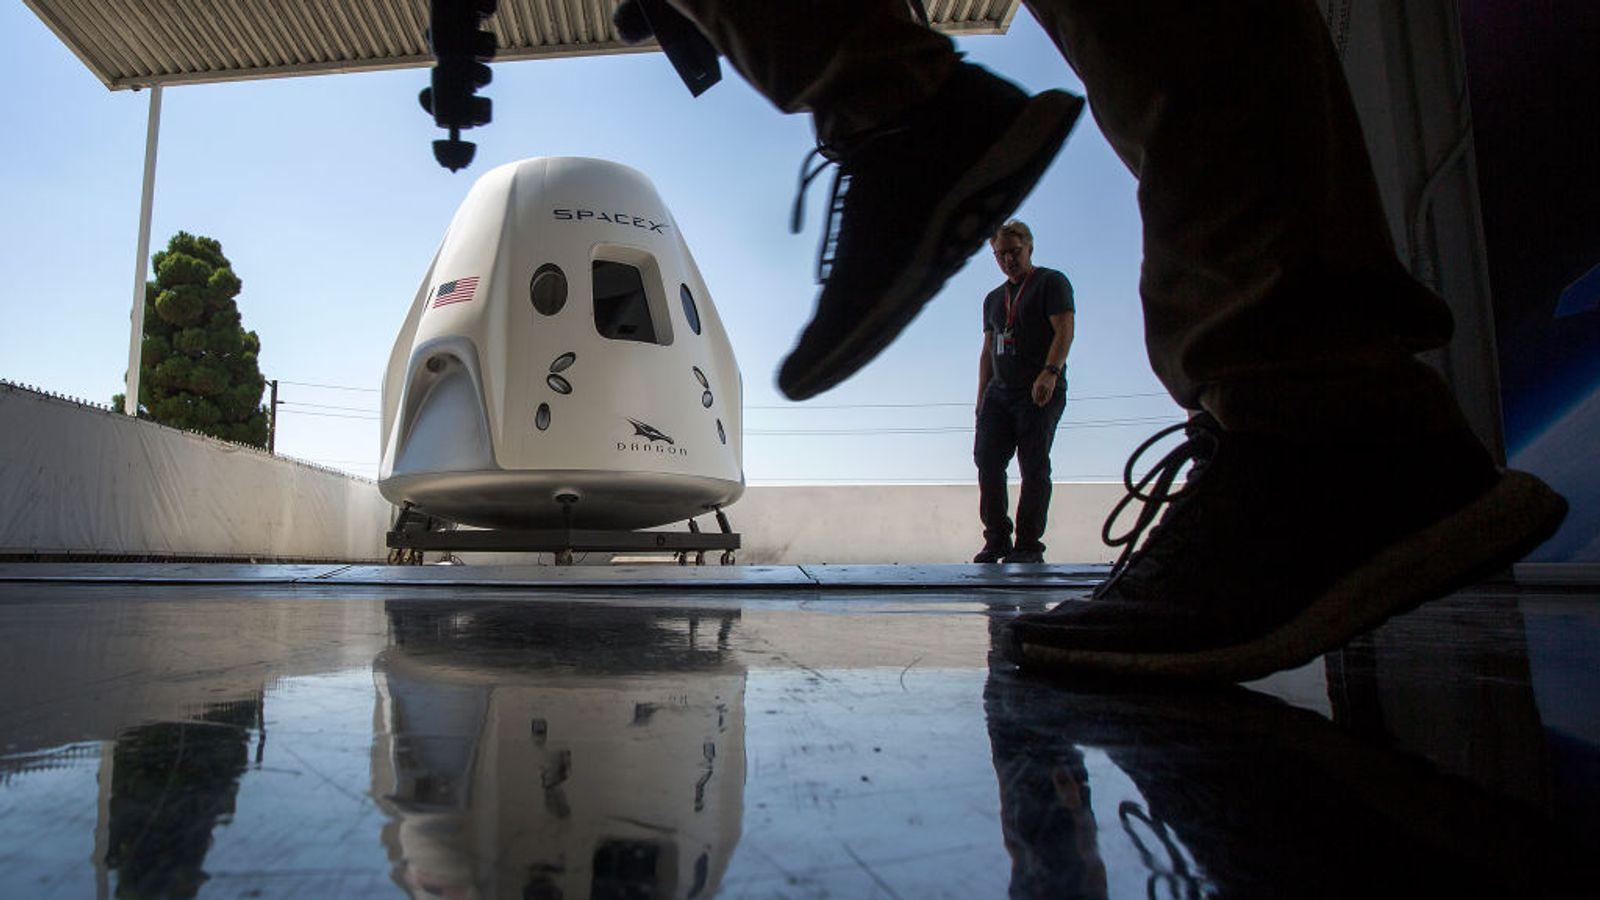 NASA delays giving green light to historic SpaceX astronaut launch - Sky News